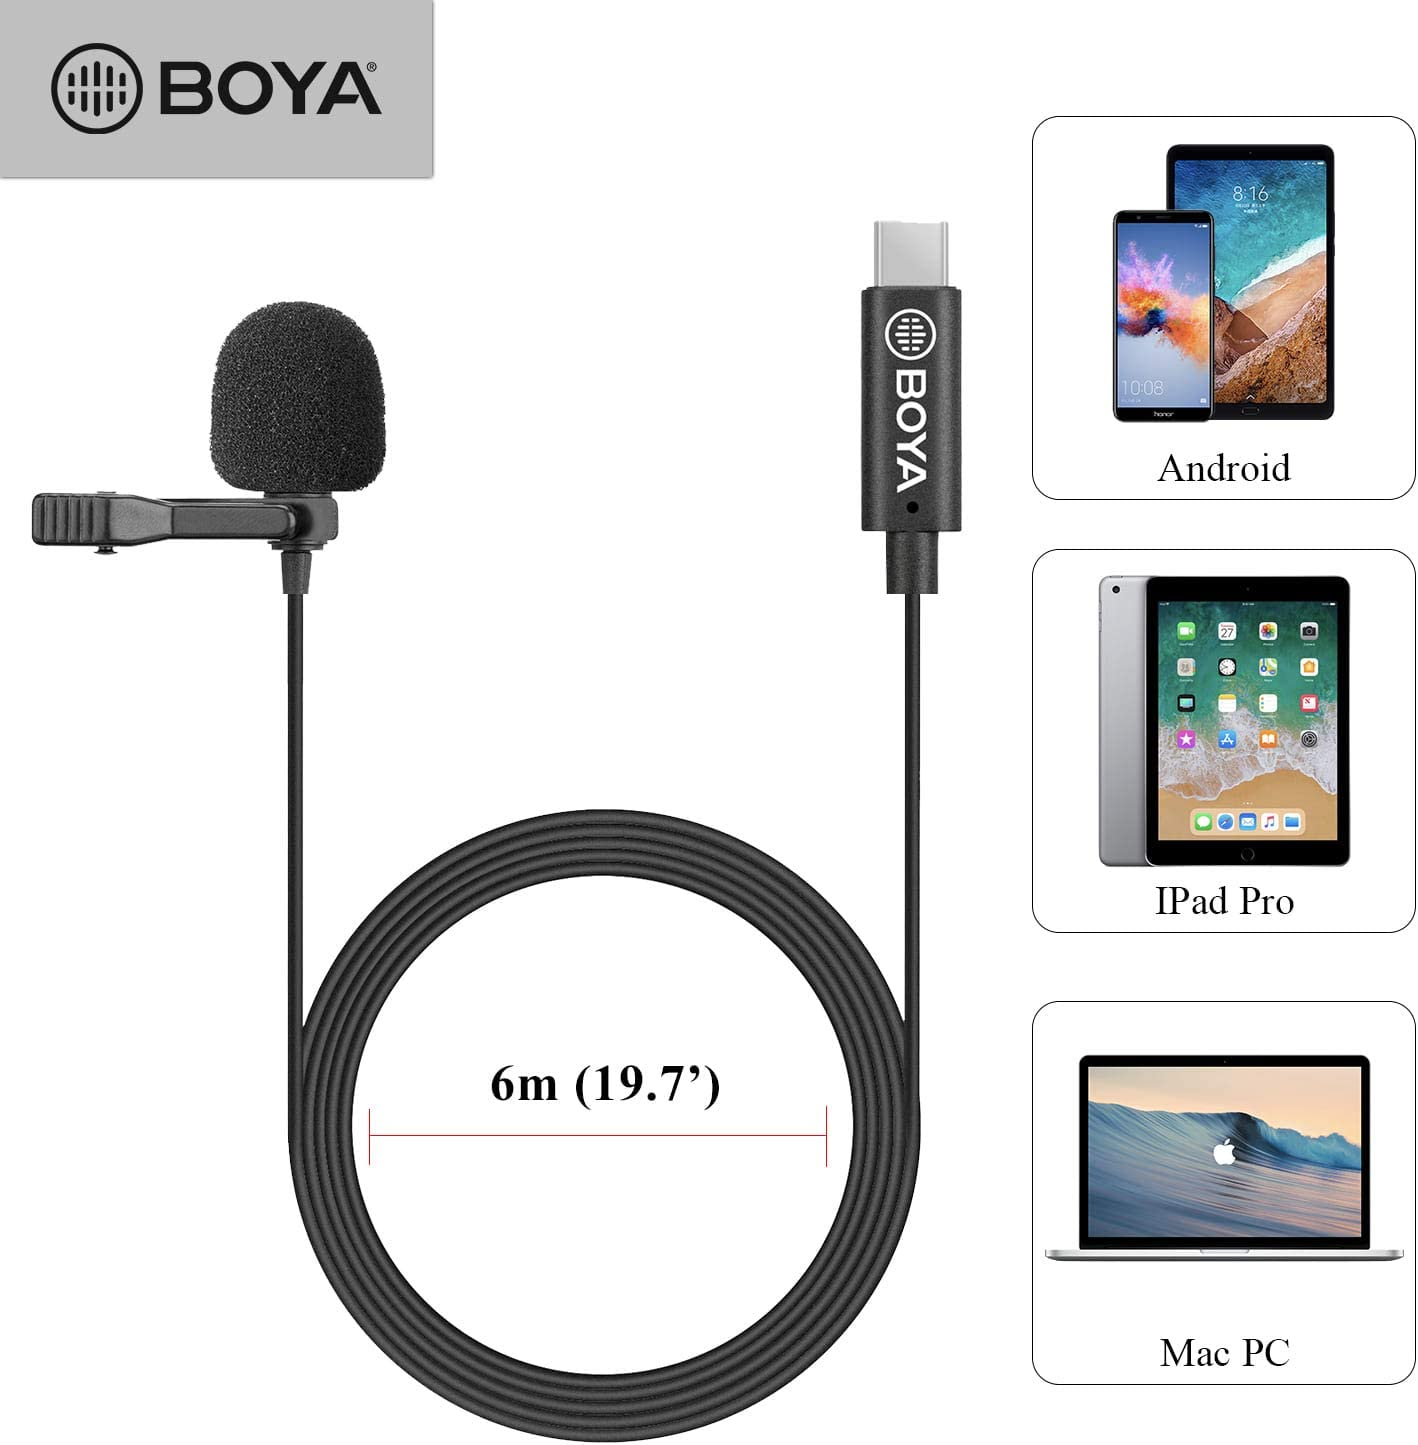 236inch Cable Length BOYA by-M3 Clip-on Omnidirectional Lavalier Microphone for USB-C Android Devices